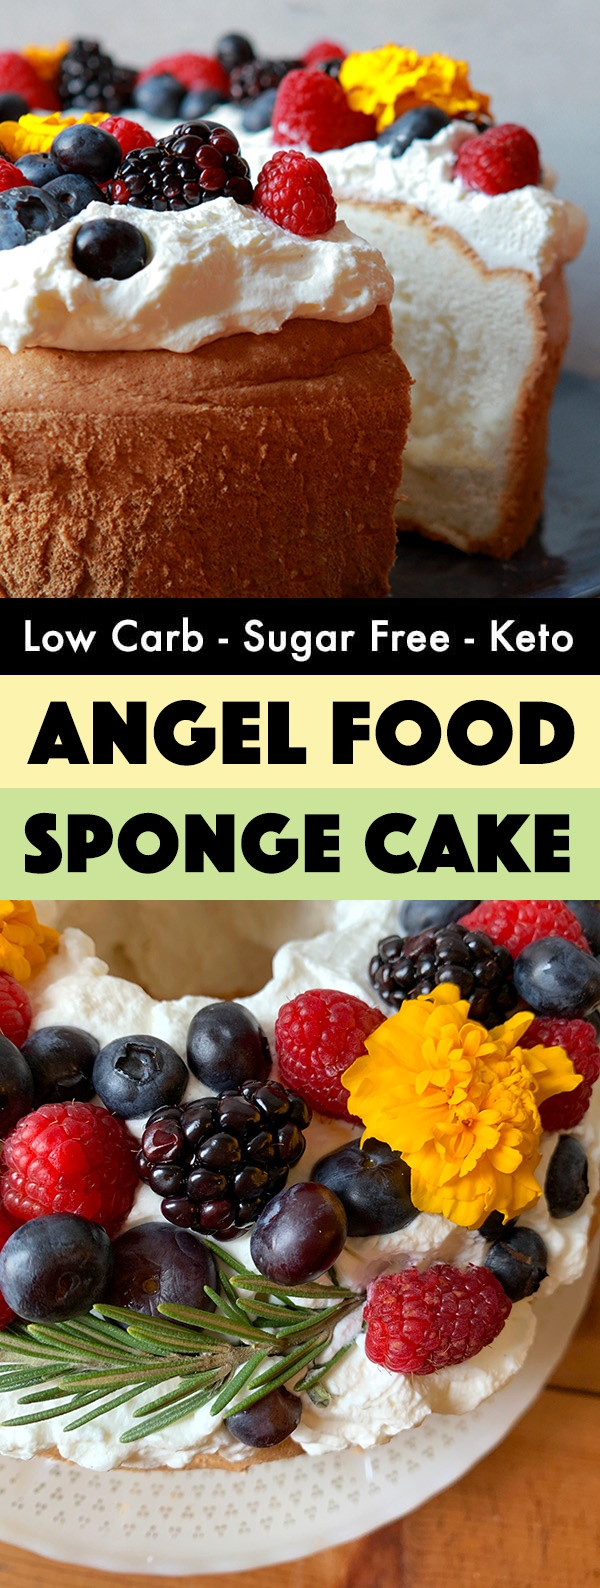 Low carb angel food cake is difficult to make, but ...